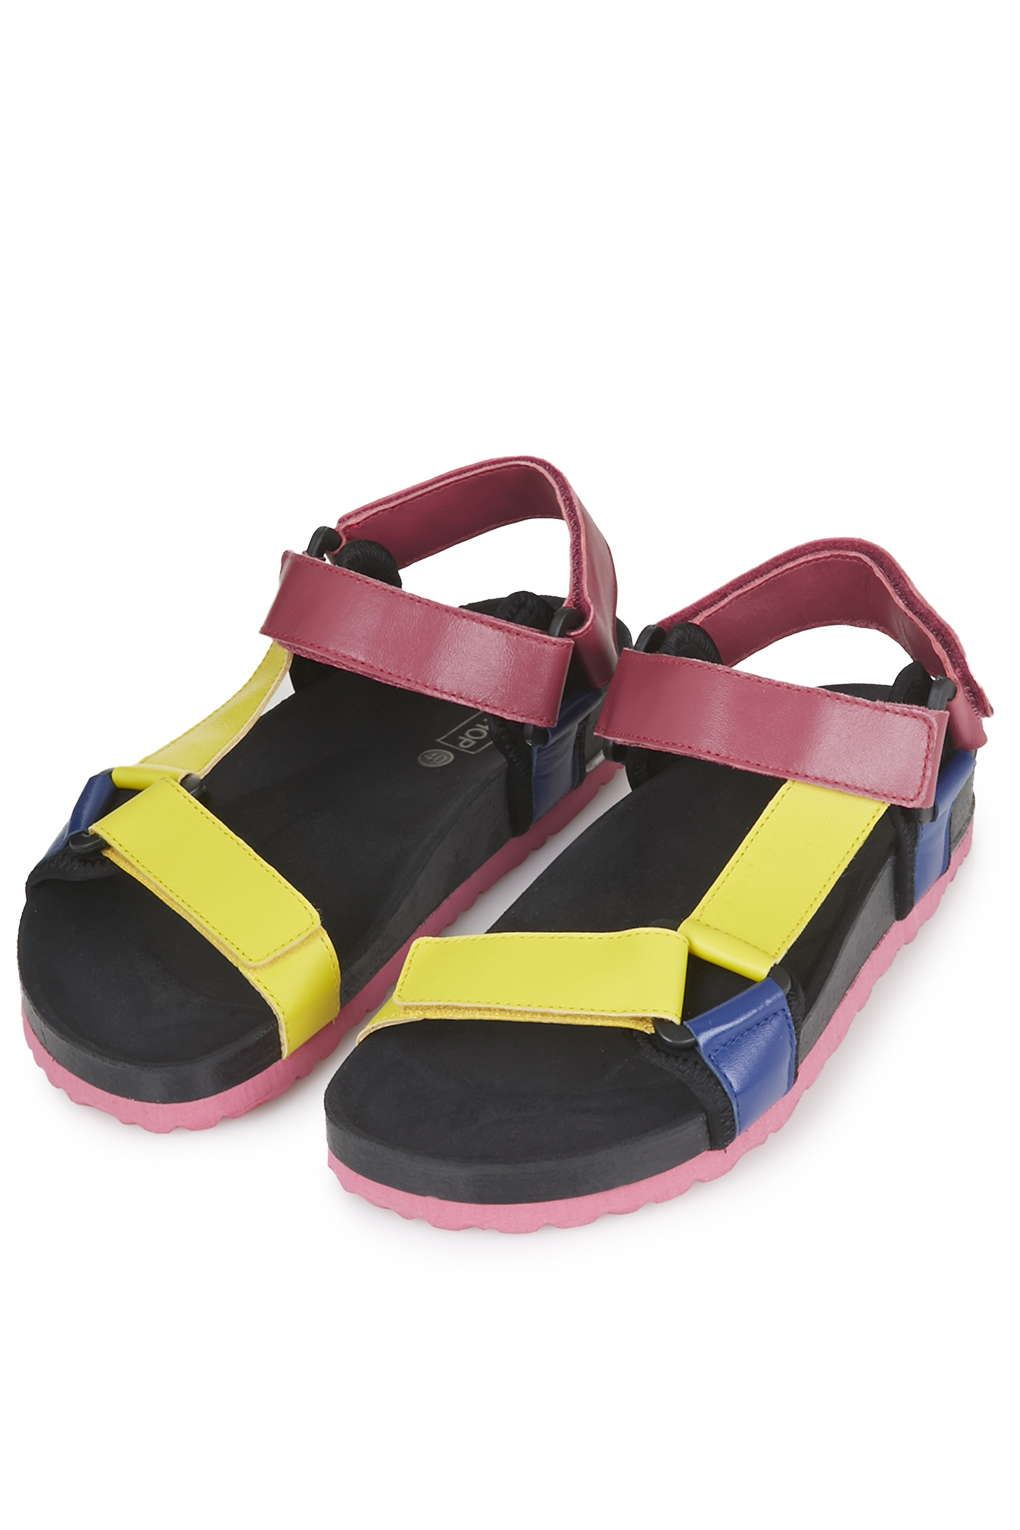 Sandals shoes usa - Funki Reef Sandals